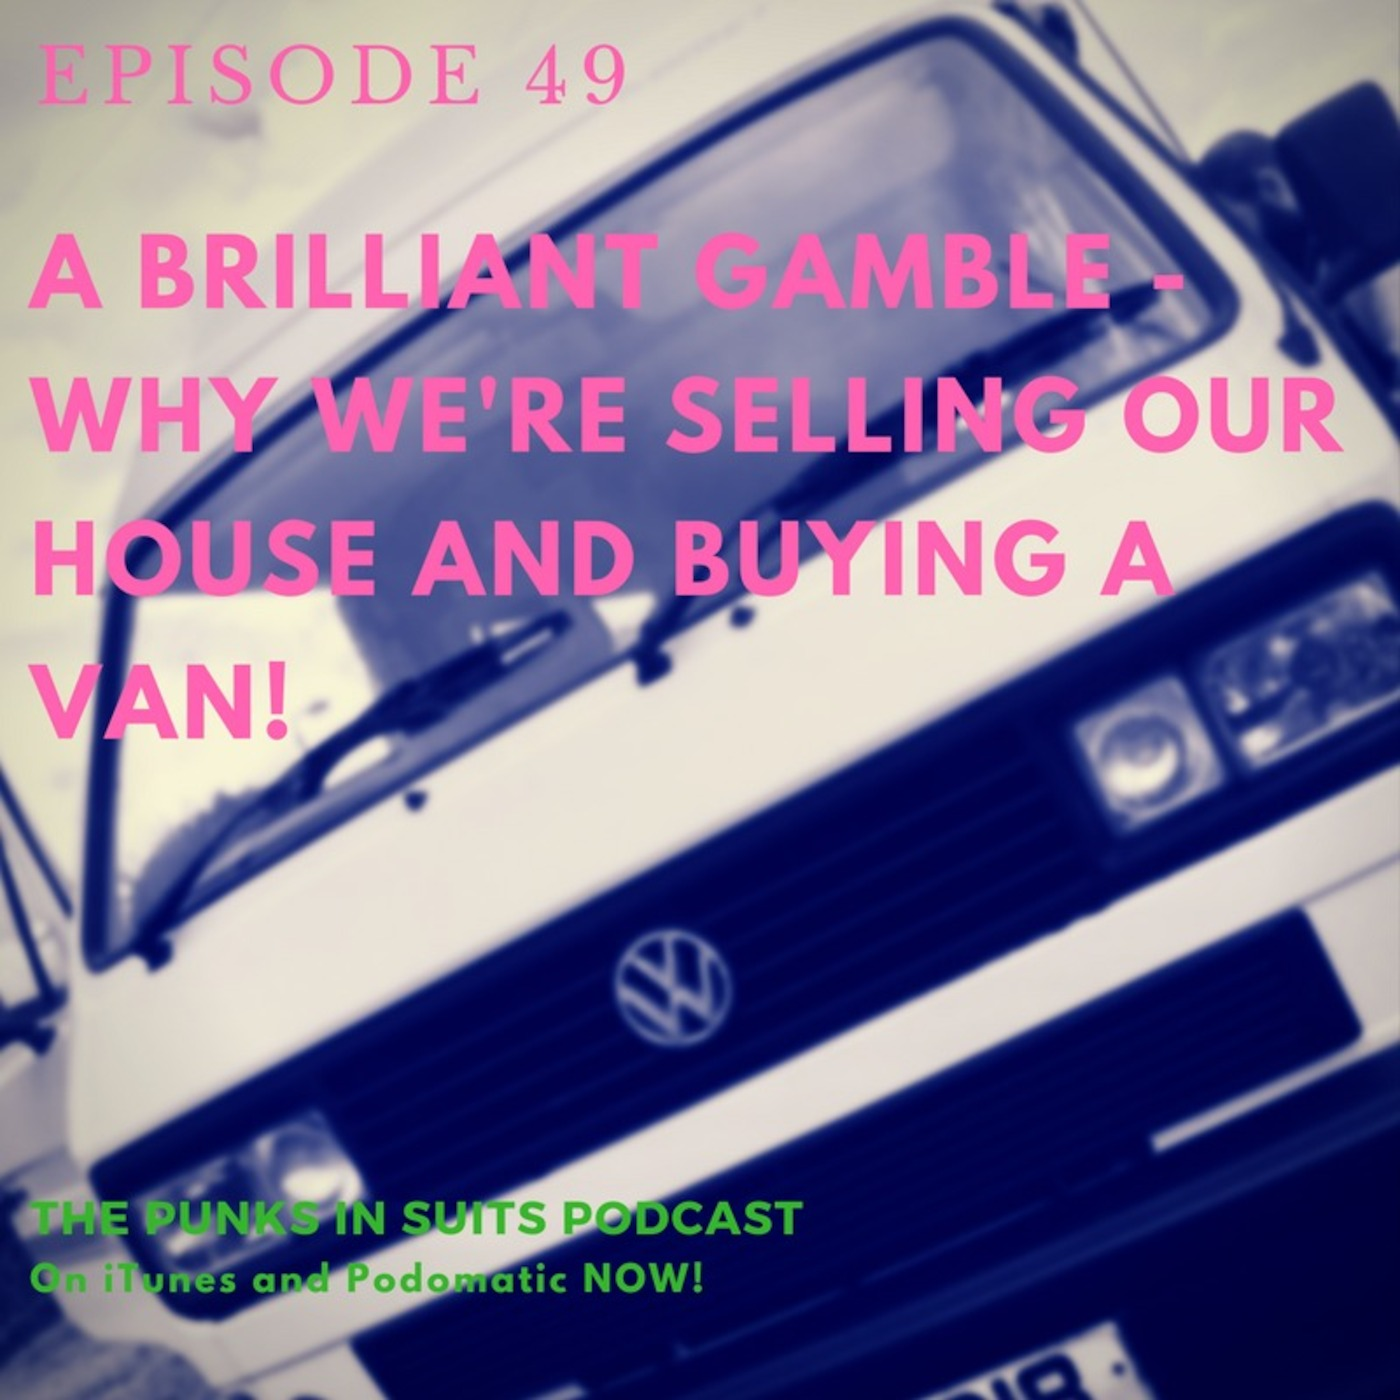 Episode 49: A Brilliant Gamble - Why I'm selling my house and buying a van